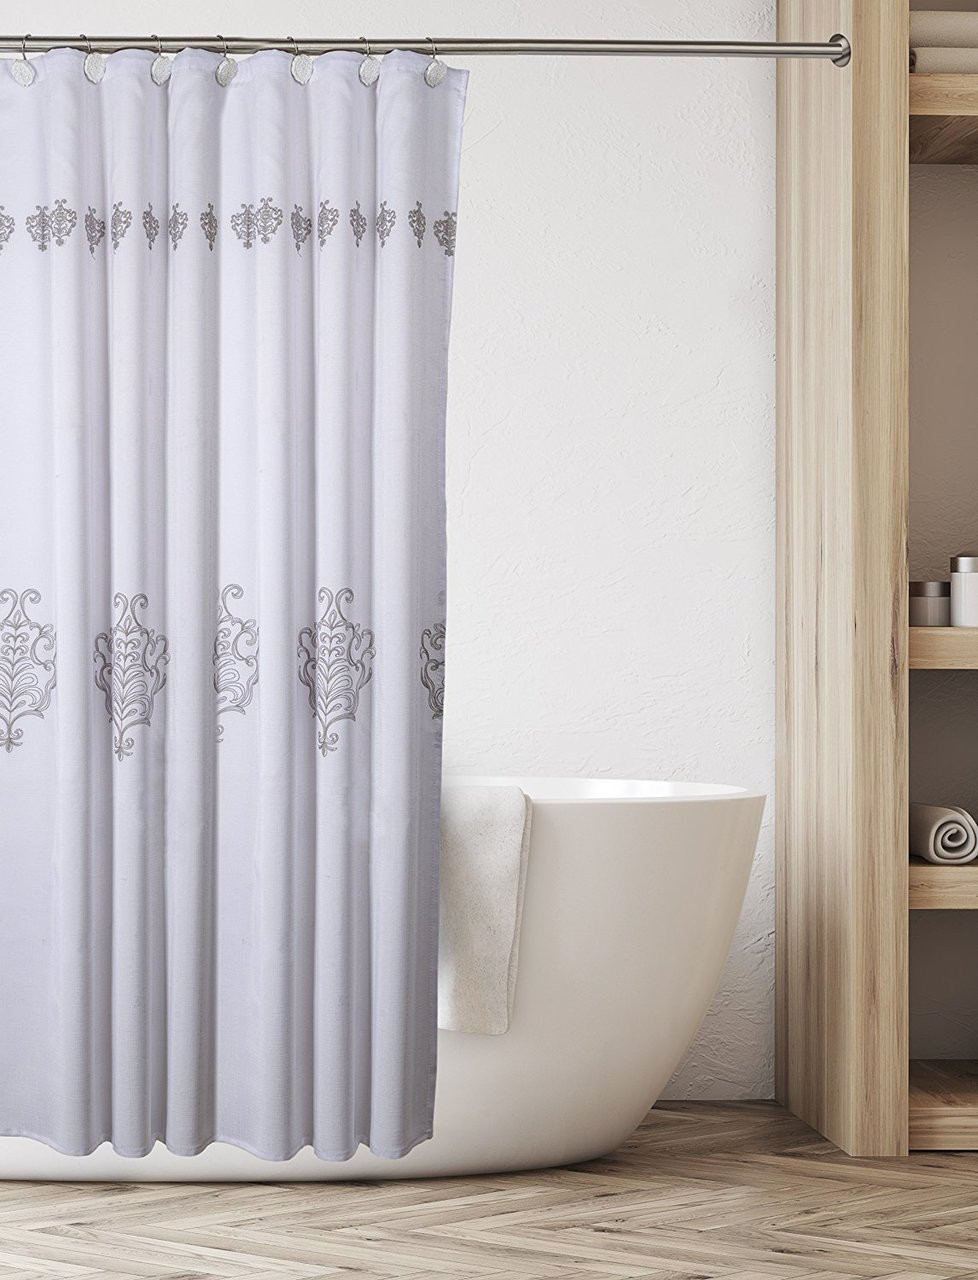 Vintage White Shower Curtain Click To Enlarge Image